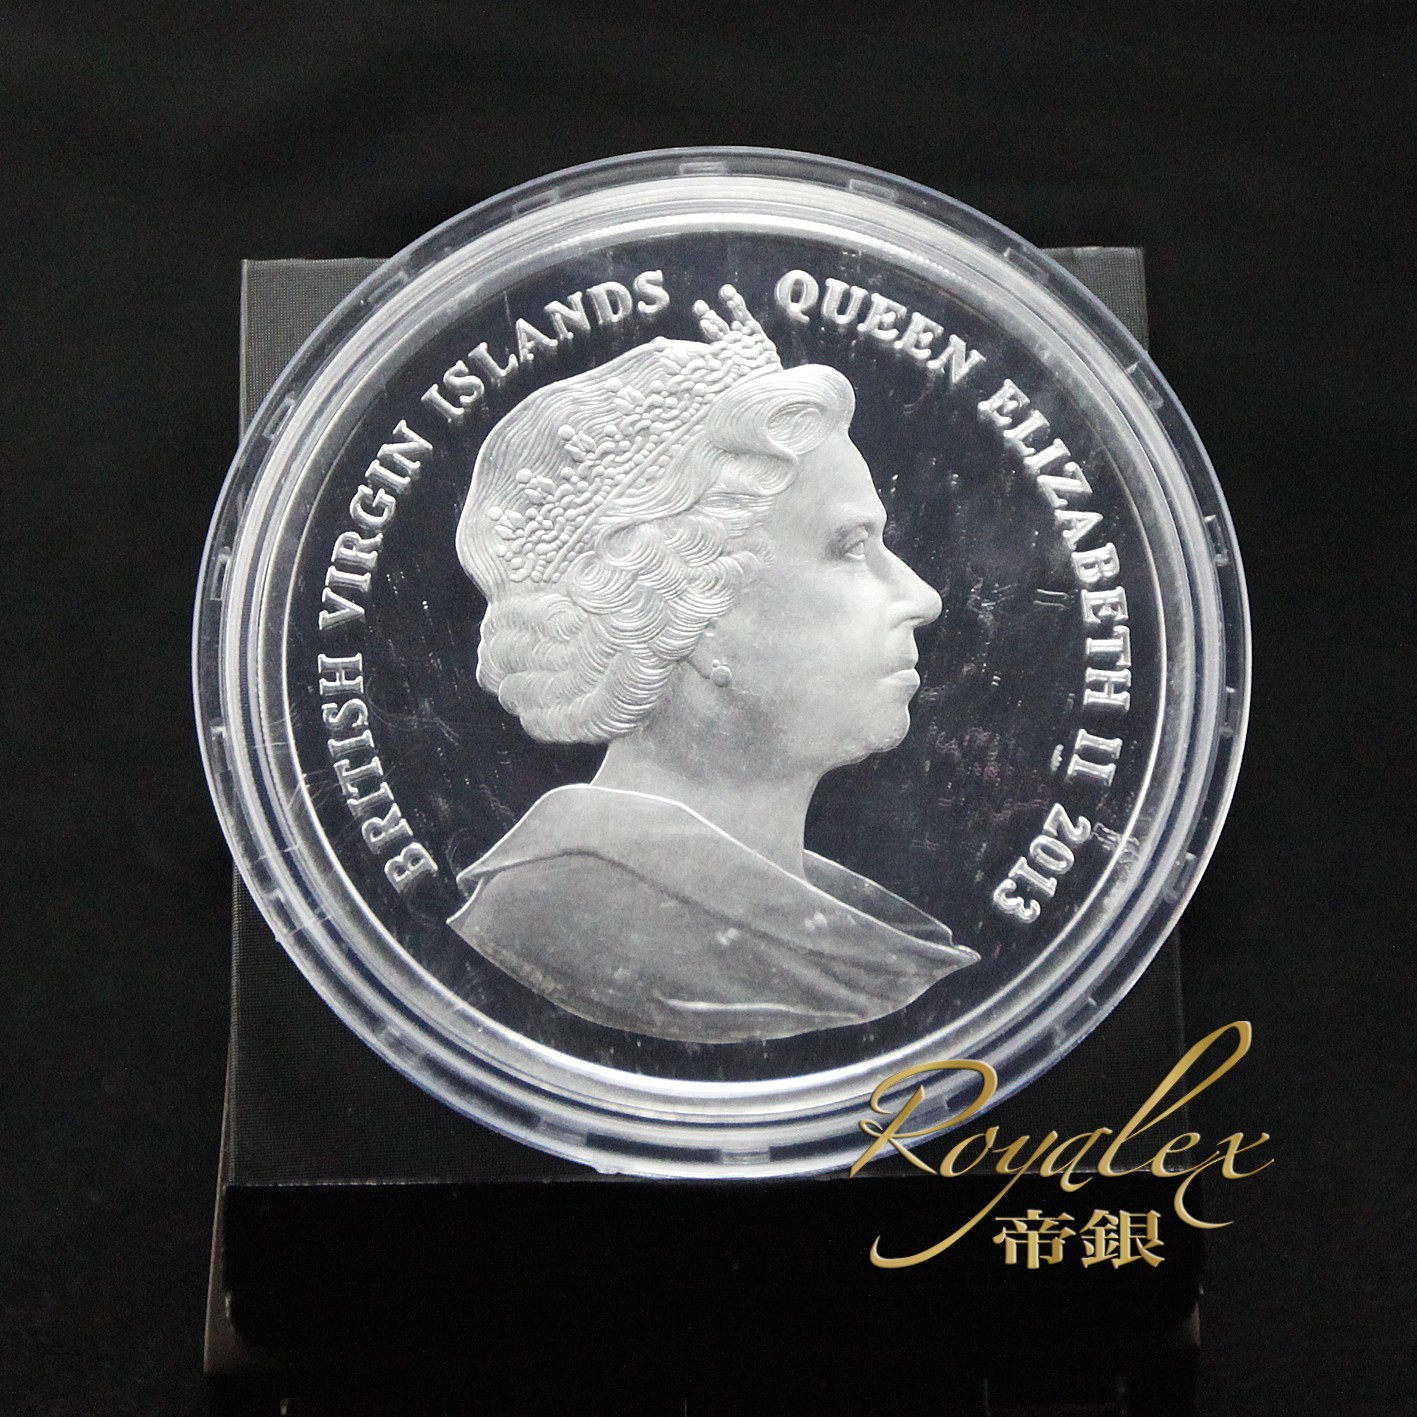 British Virgin Islands 2013 Lunar Snake Gilder Silver 5 Oz